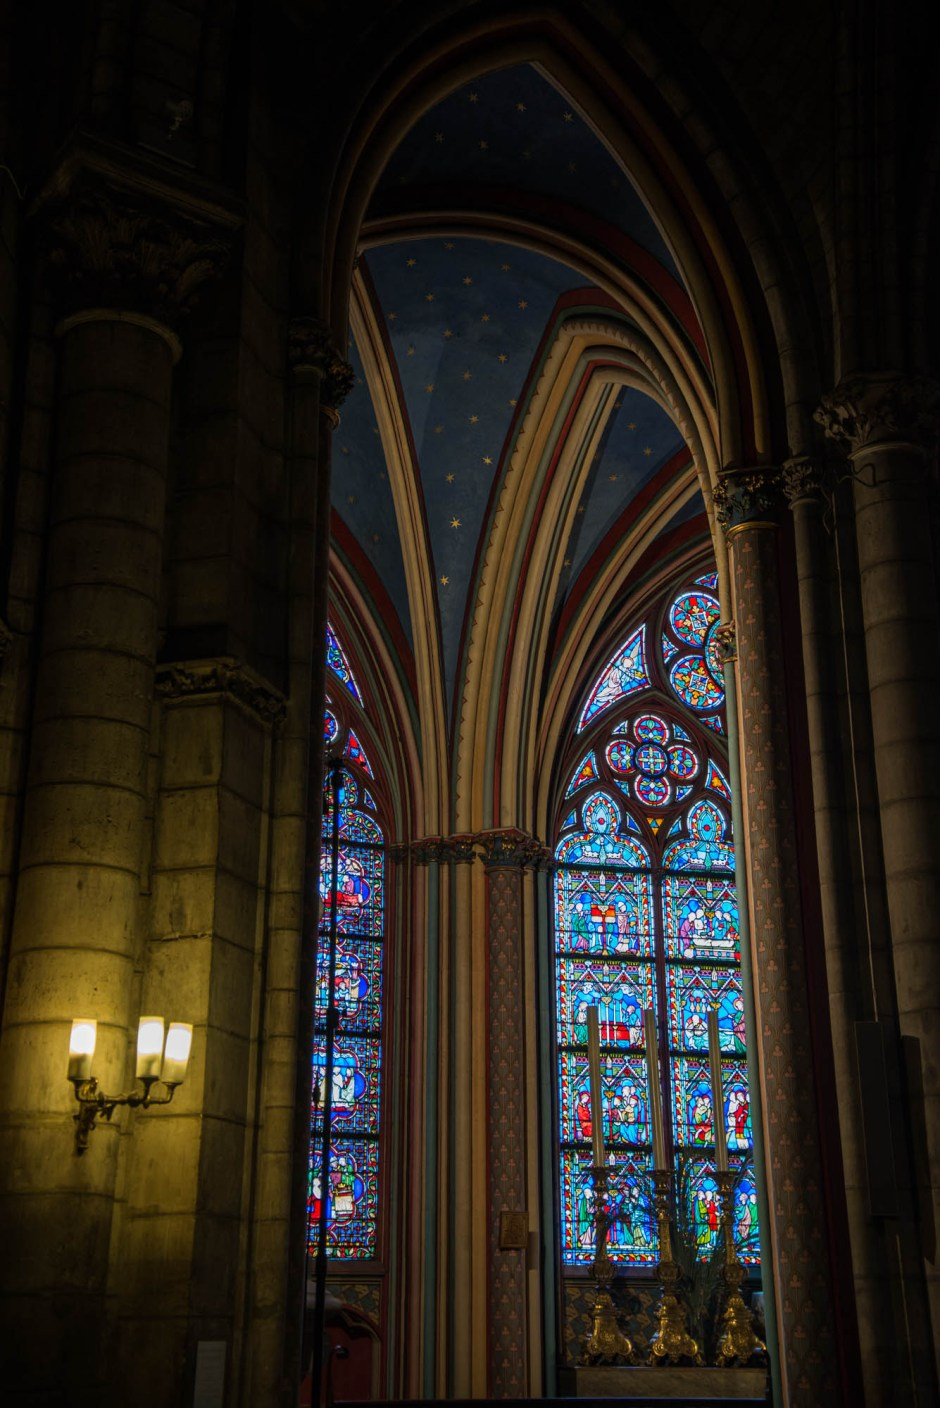 The colorfull arches and roof of the Notre Dame catherdral are seen illuminated by intricate stained glass windows and candlelight